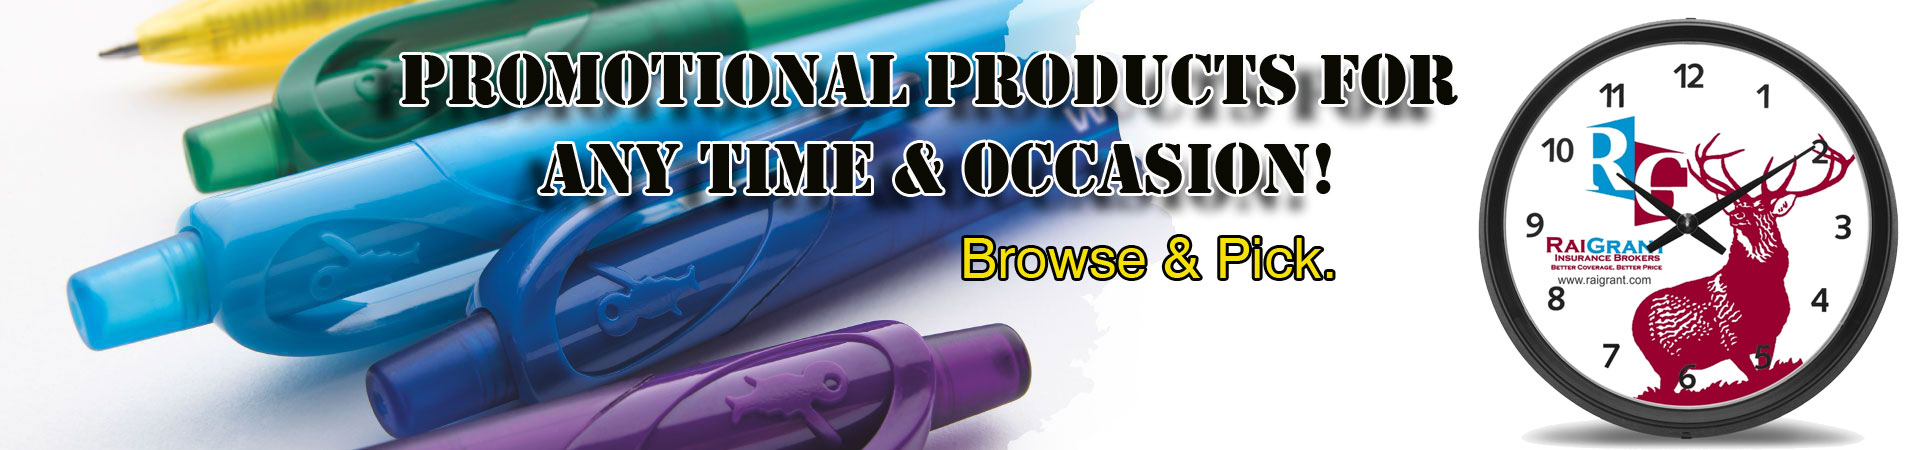 customized promotional products for all occasions